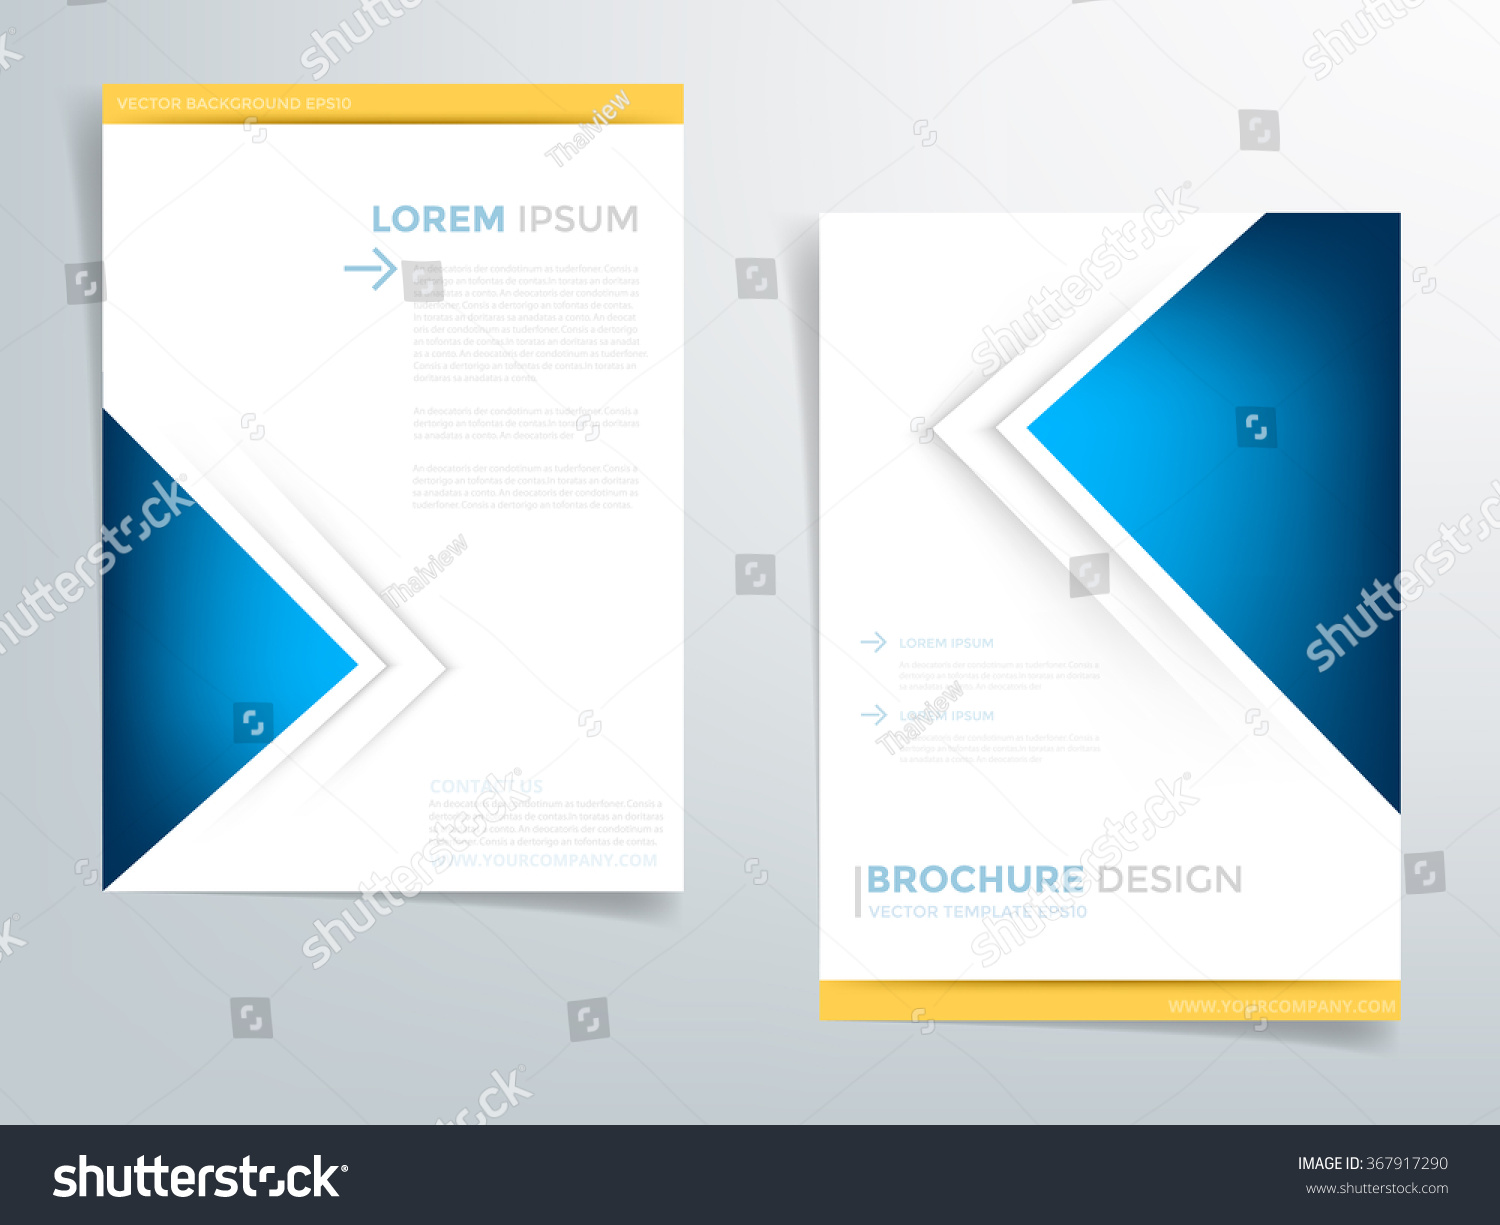 Blue brochure template flyer design background stock for Background for brochure design